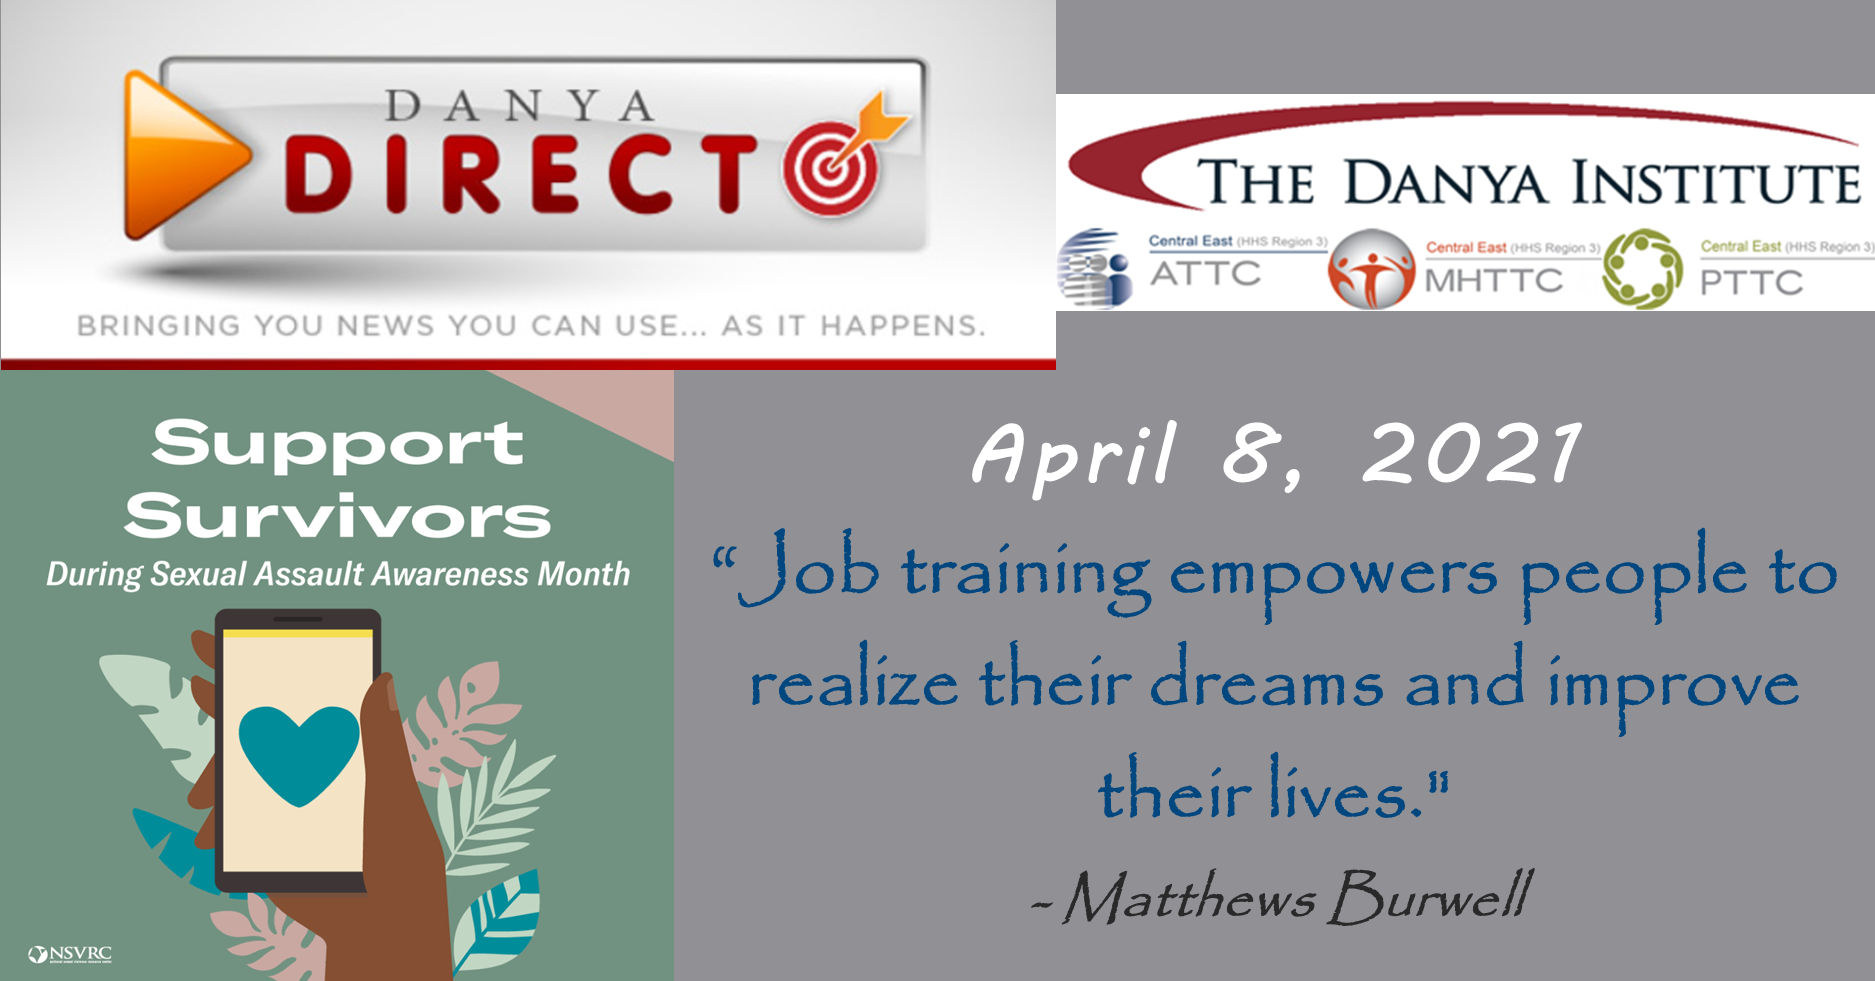 Danya Direct training bulletin 04/08/2021